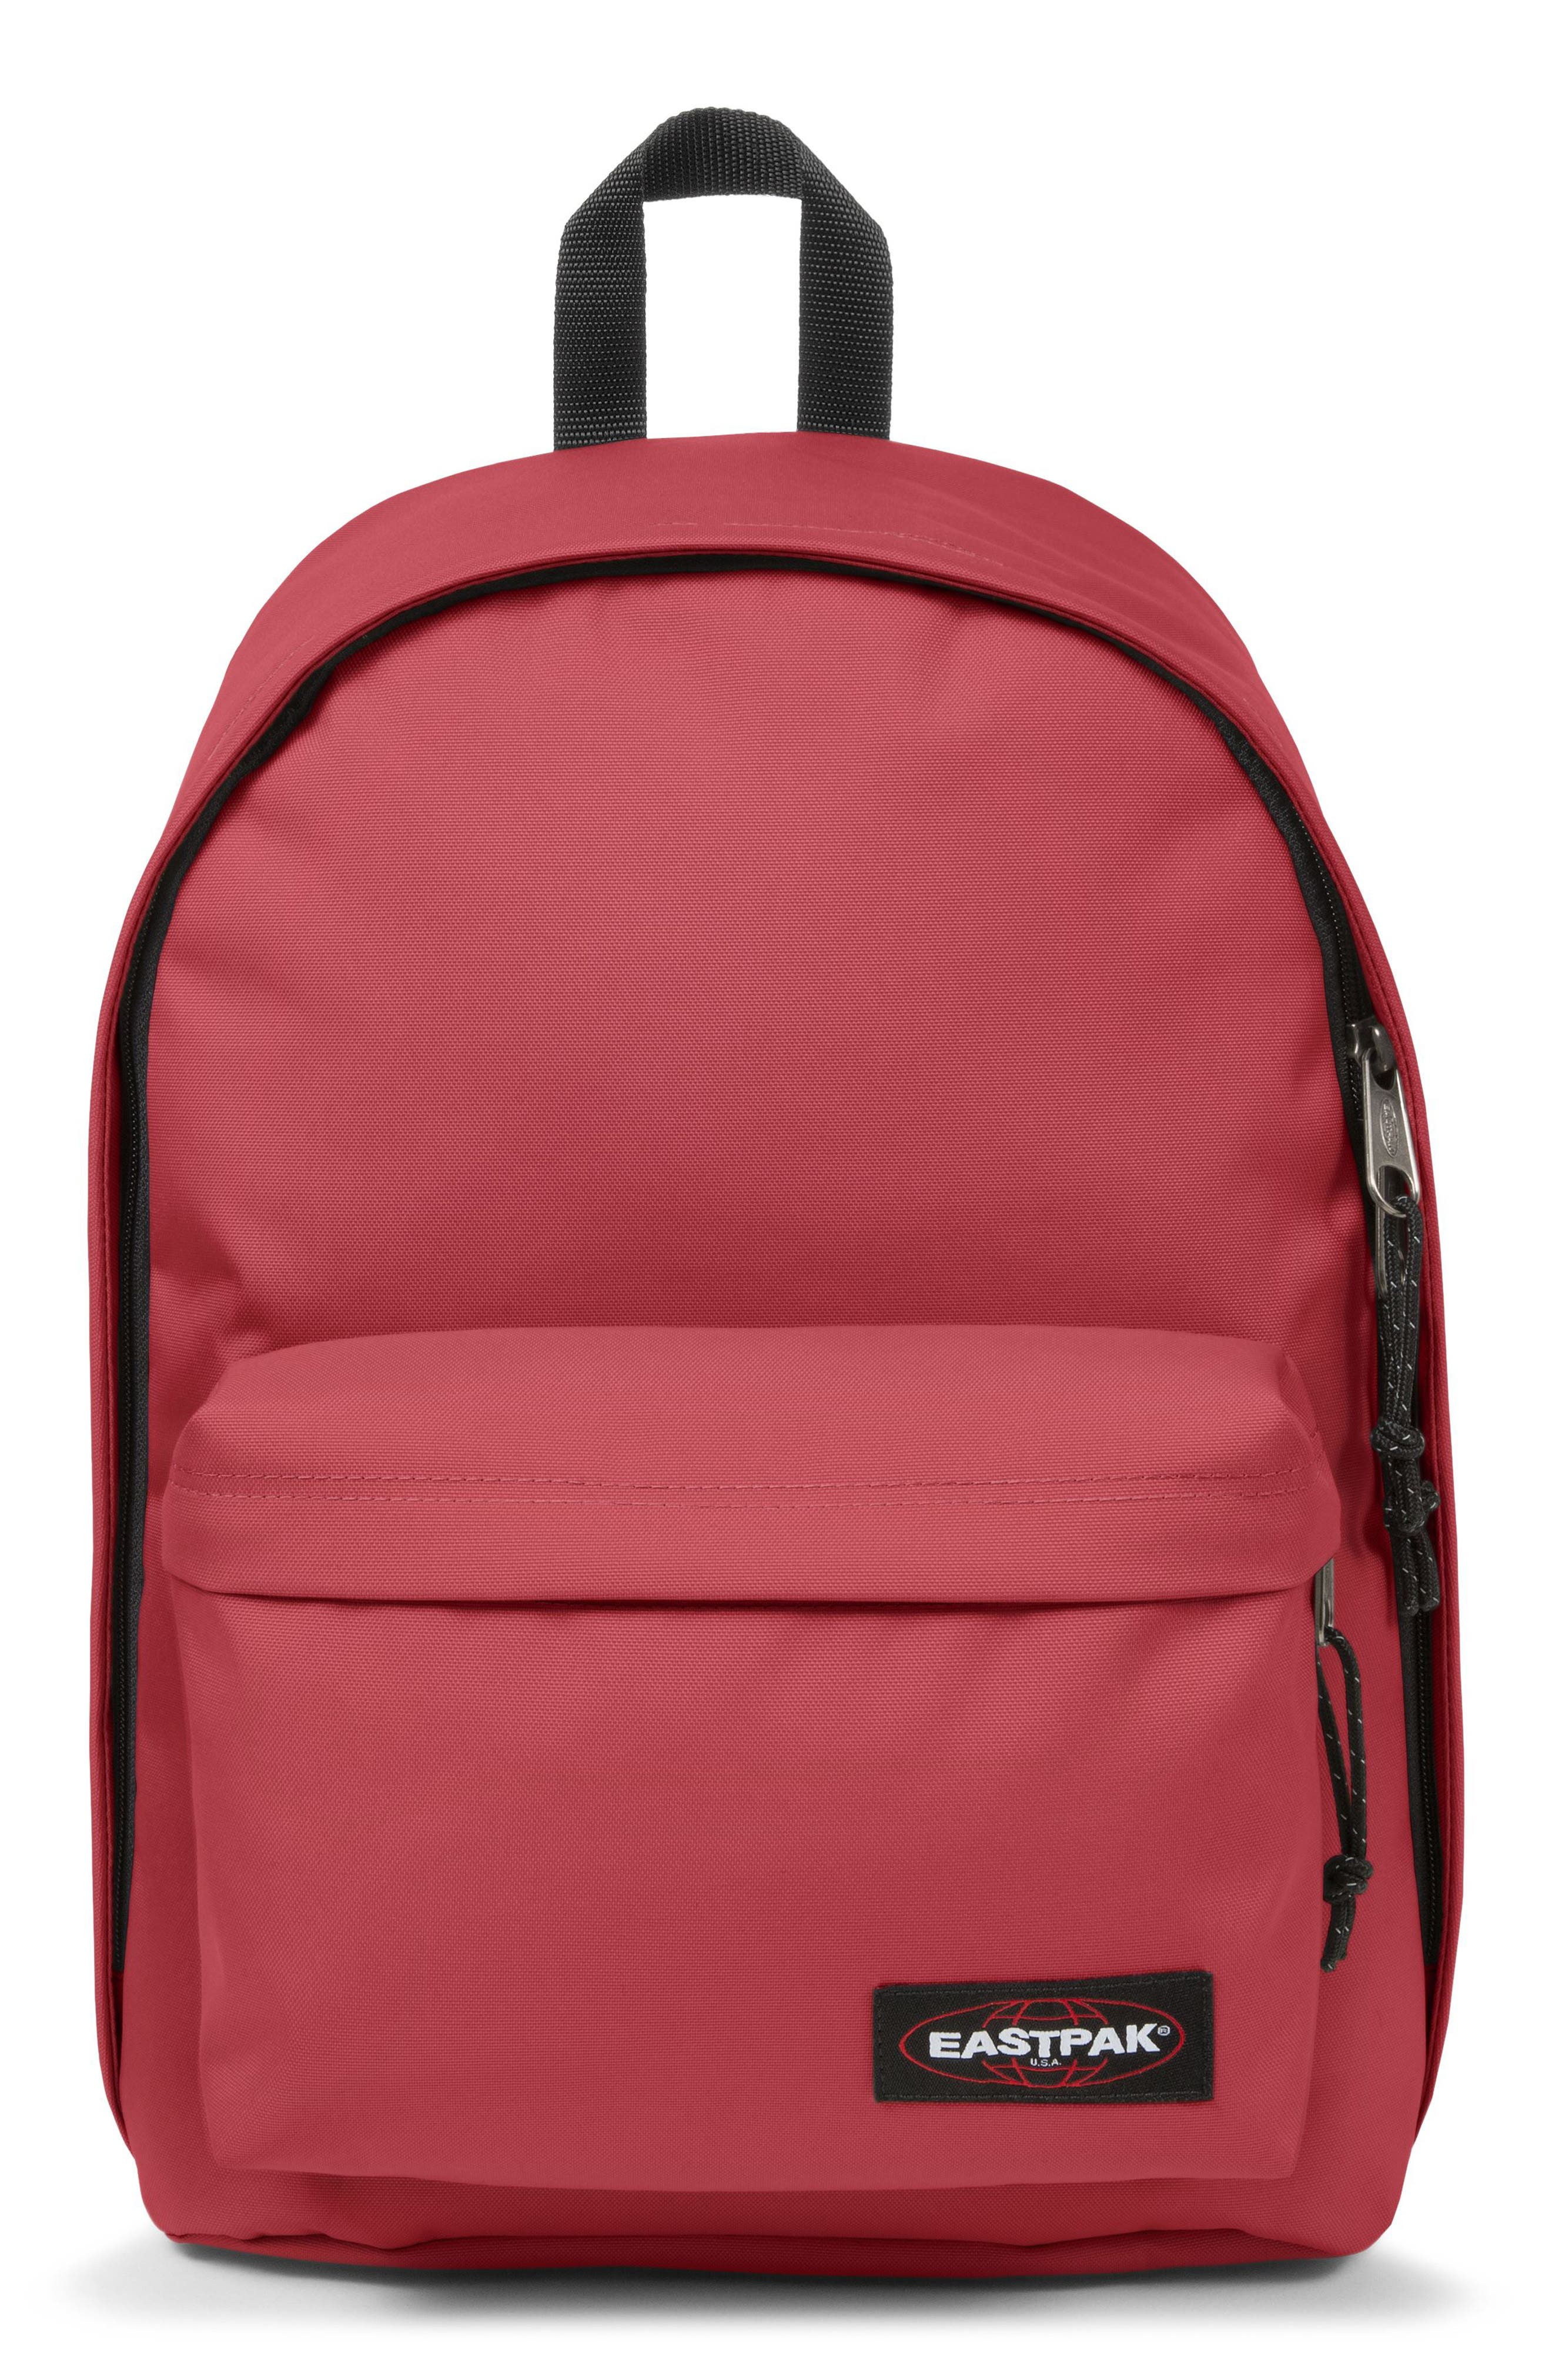 Eastpak Out Of Office Nylon Backpack - Red